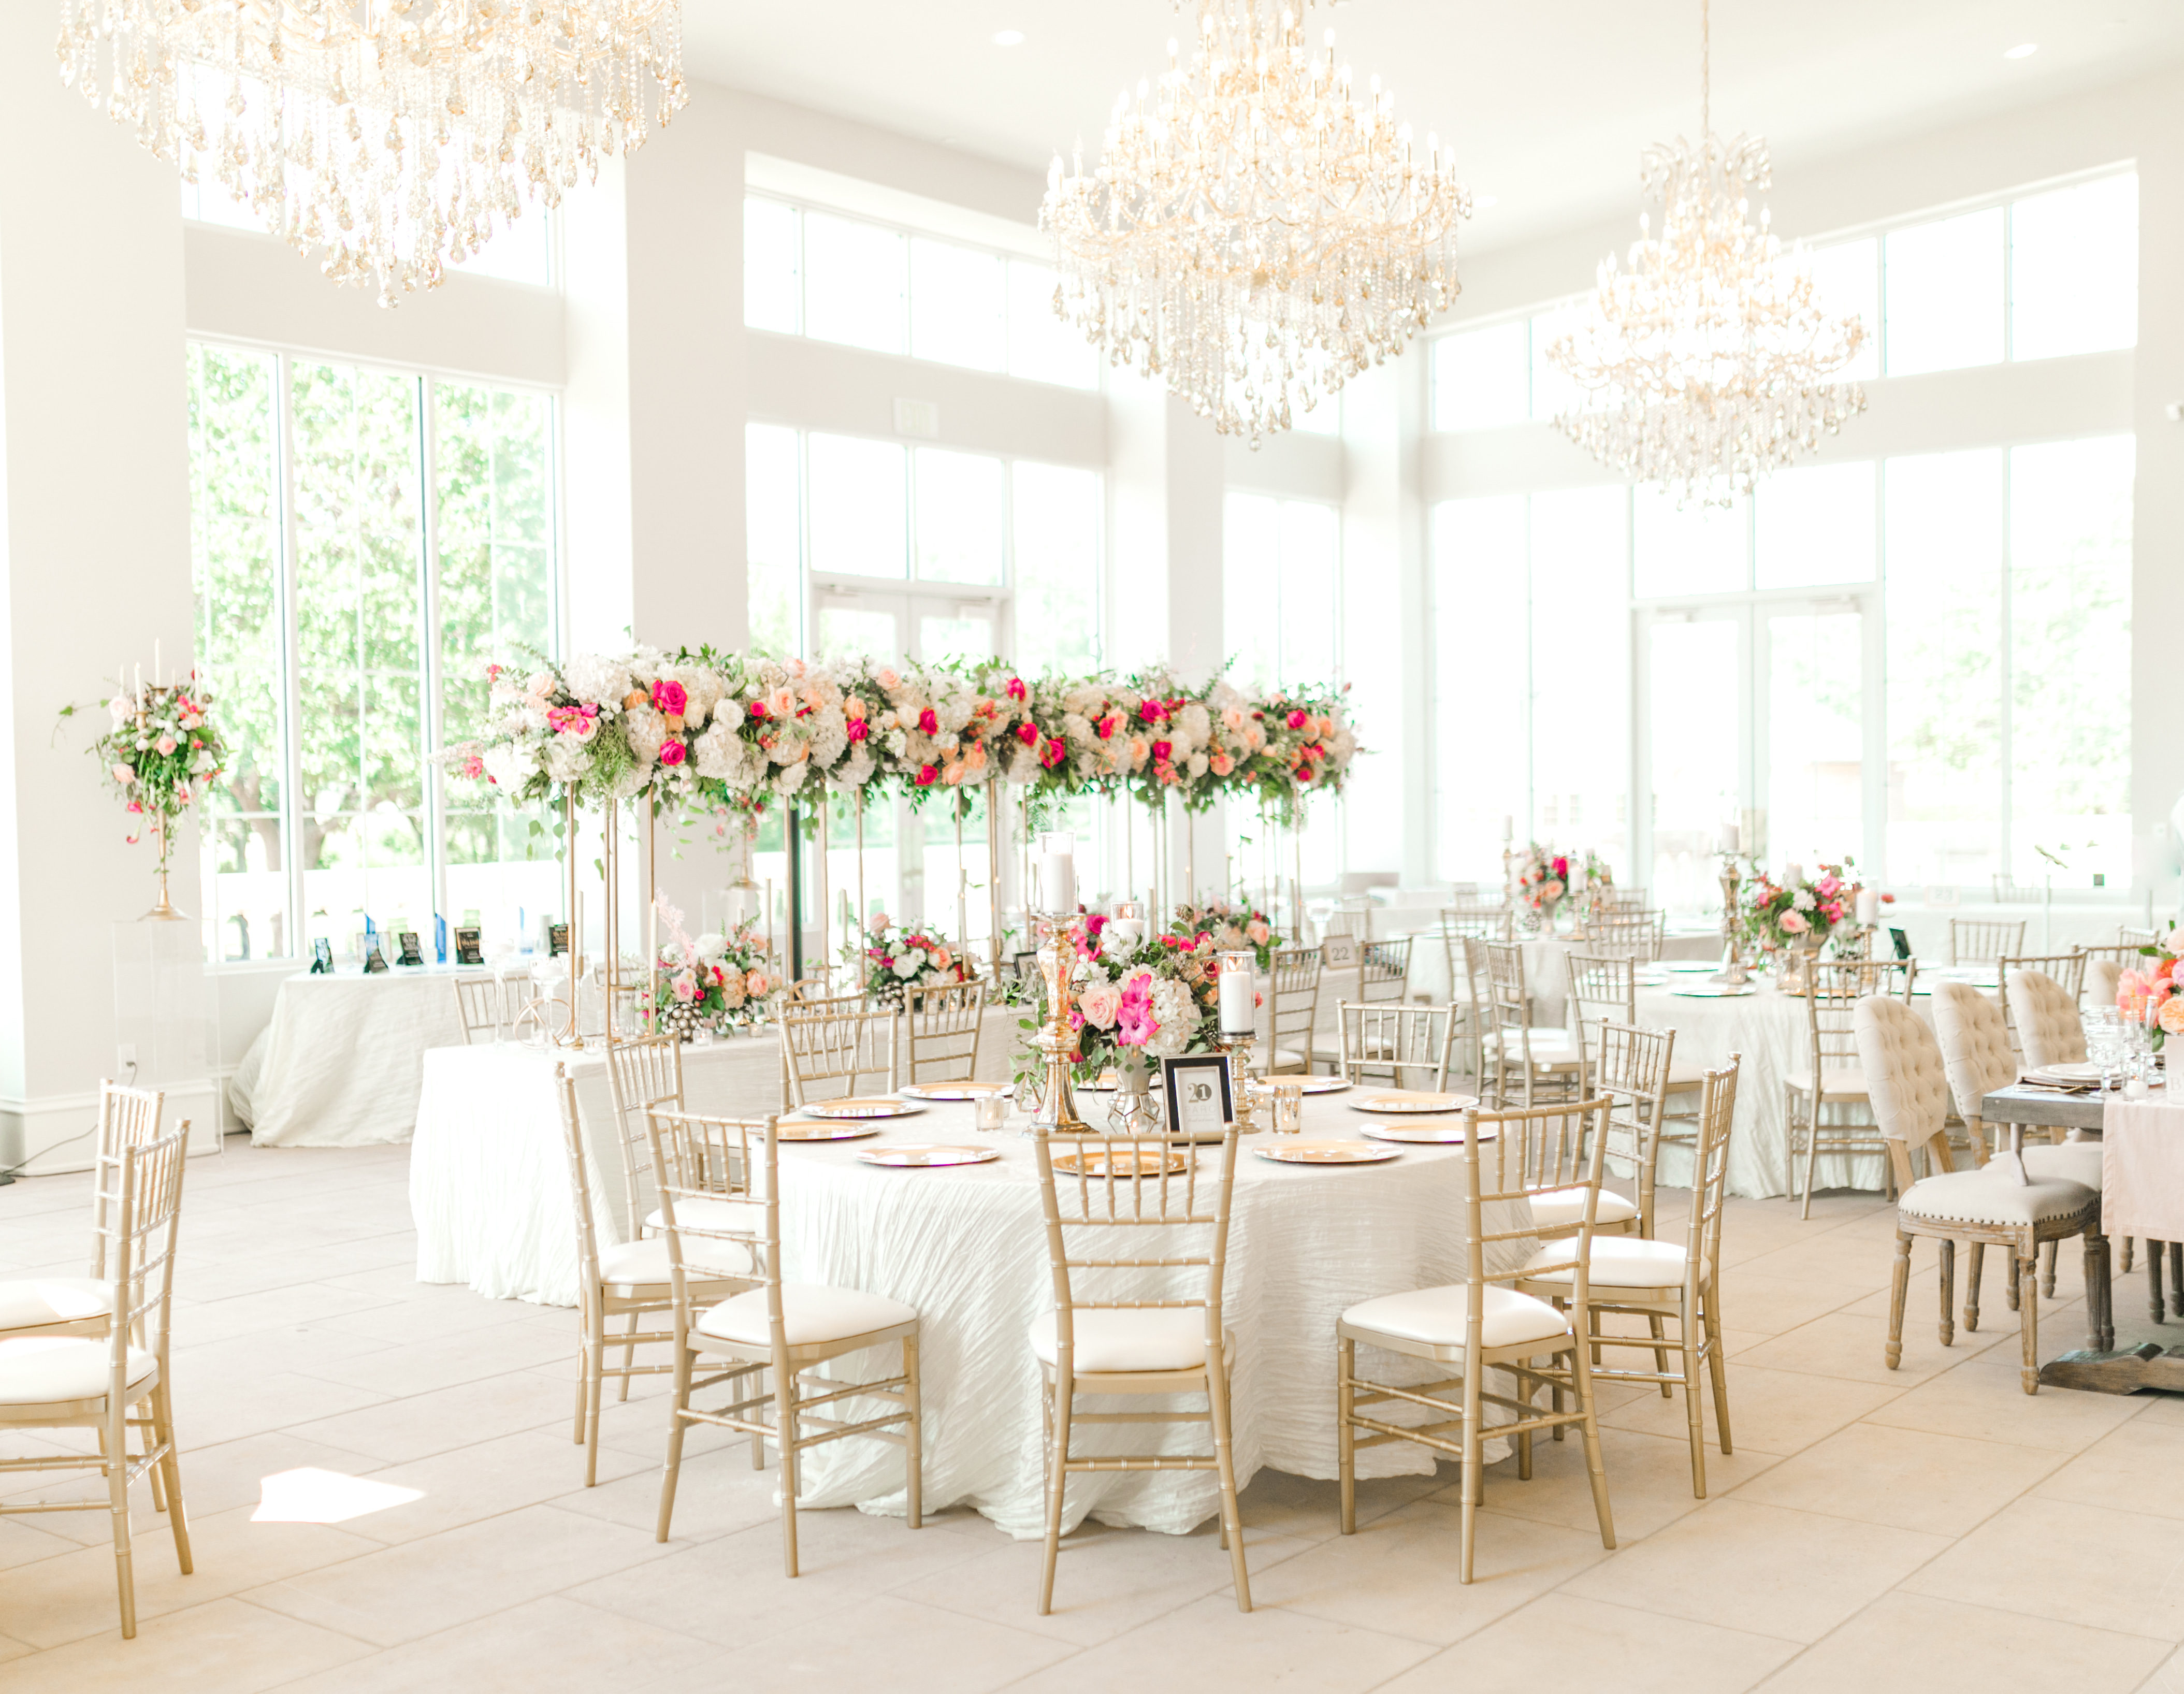 Interior of The Olana Dallas Wedding Venue, white tablecloths, giant floral arrangements and pretty chandeliers.